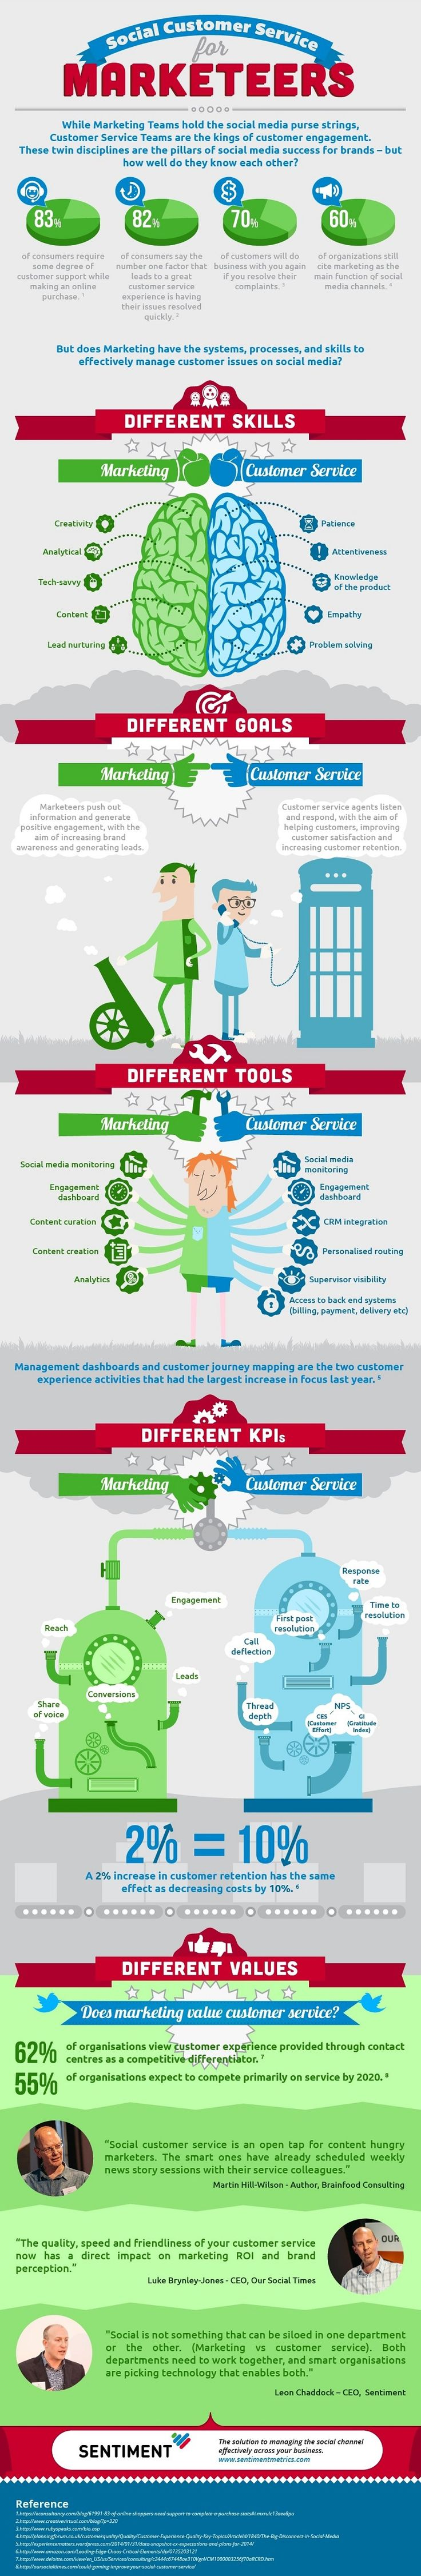 Customer Relationships - How Marketing and Customer Service Approach Customer Engagement [Infographic] : MarketingProfs Article